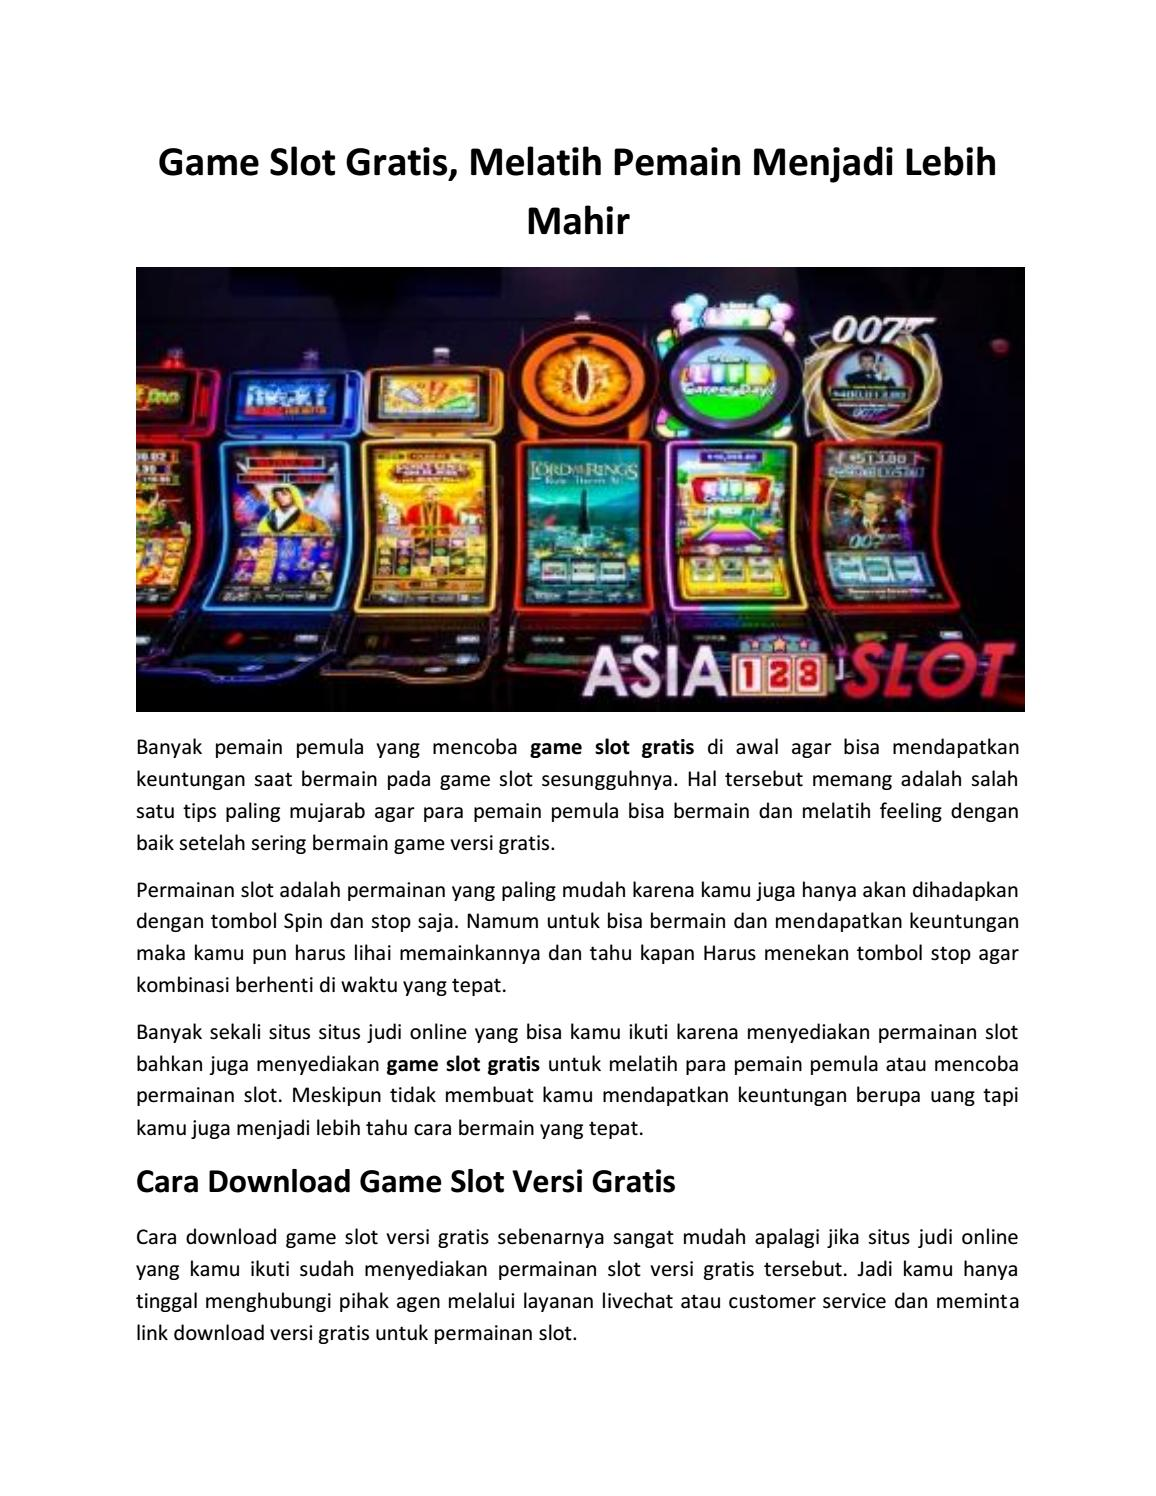 Situs Game Slot Online Gratis Indonesia By Asia123slot Issuu